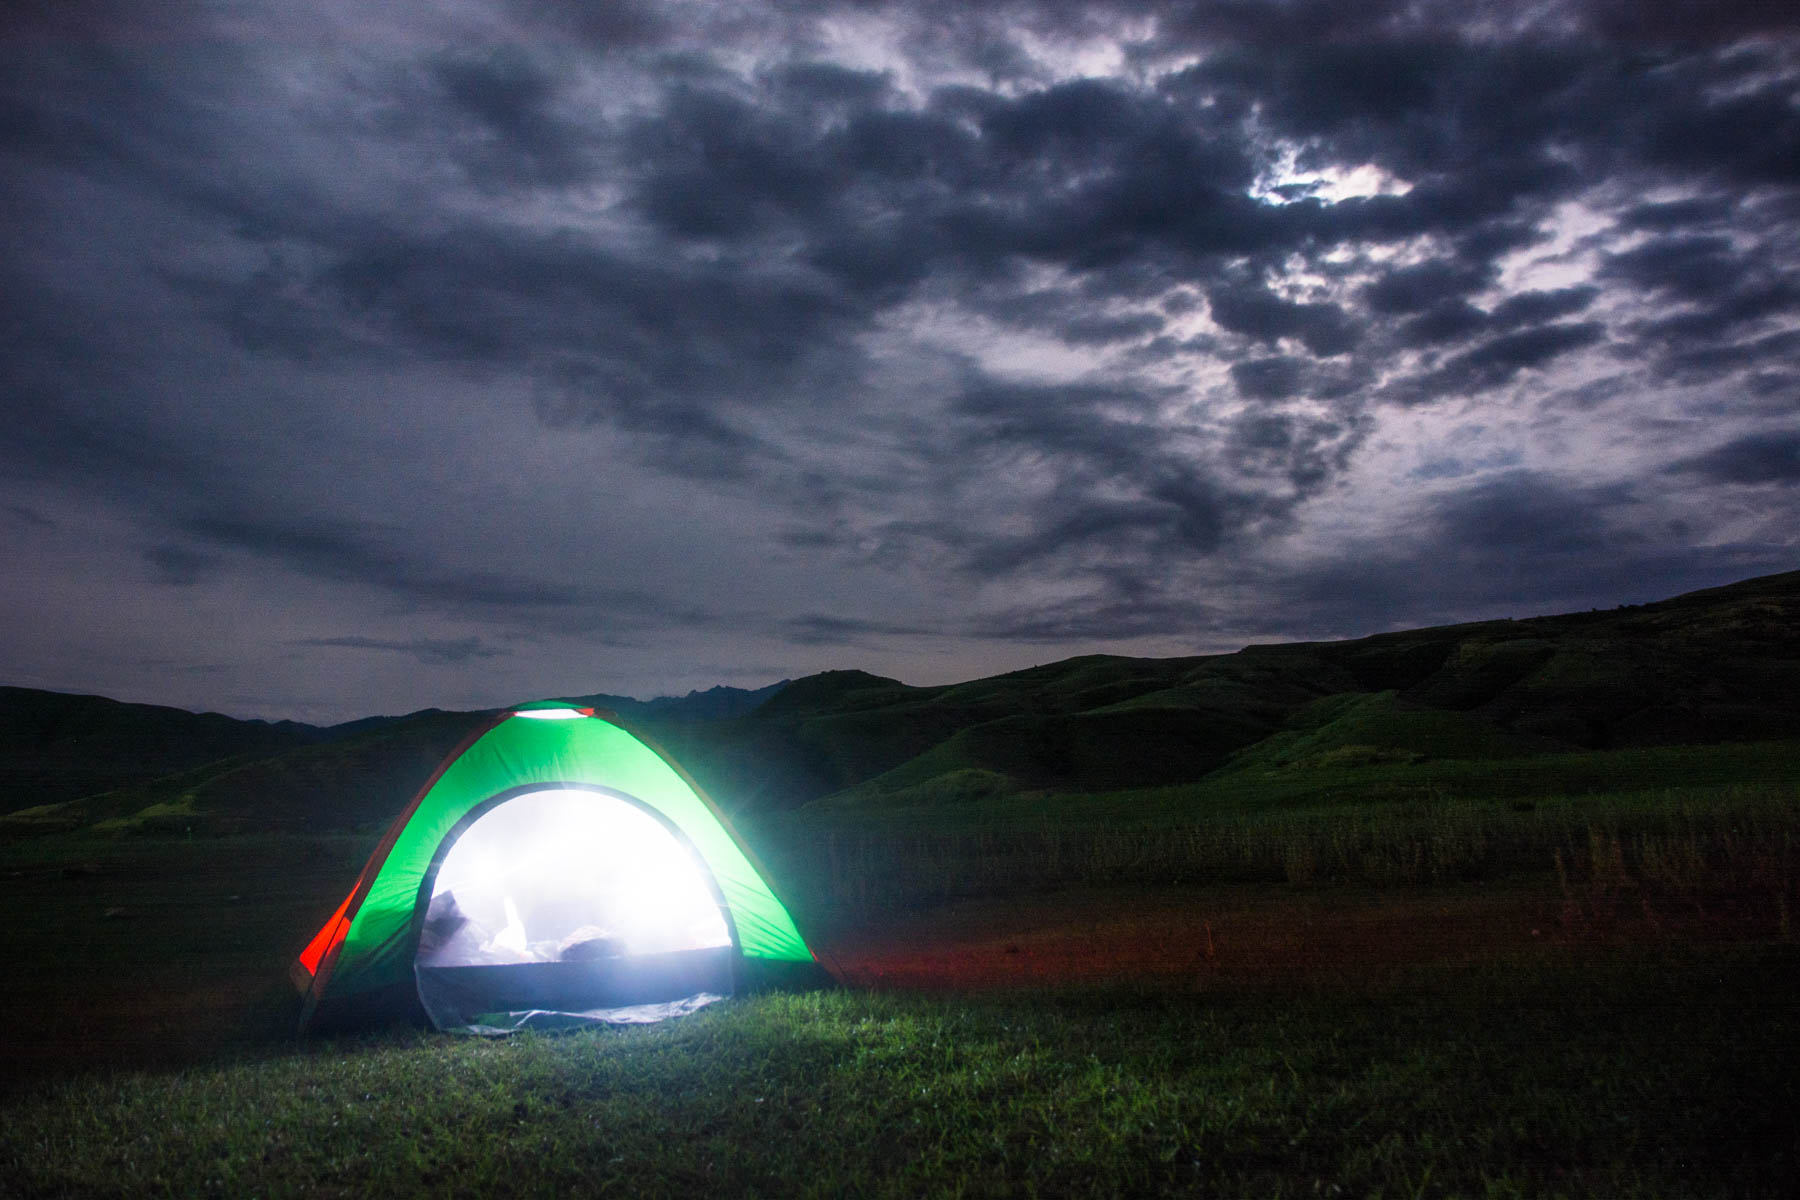 Camping to save money in Saty, Kazakhstan - Lost With Purpose